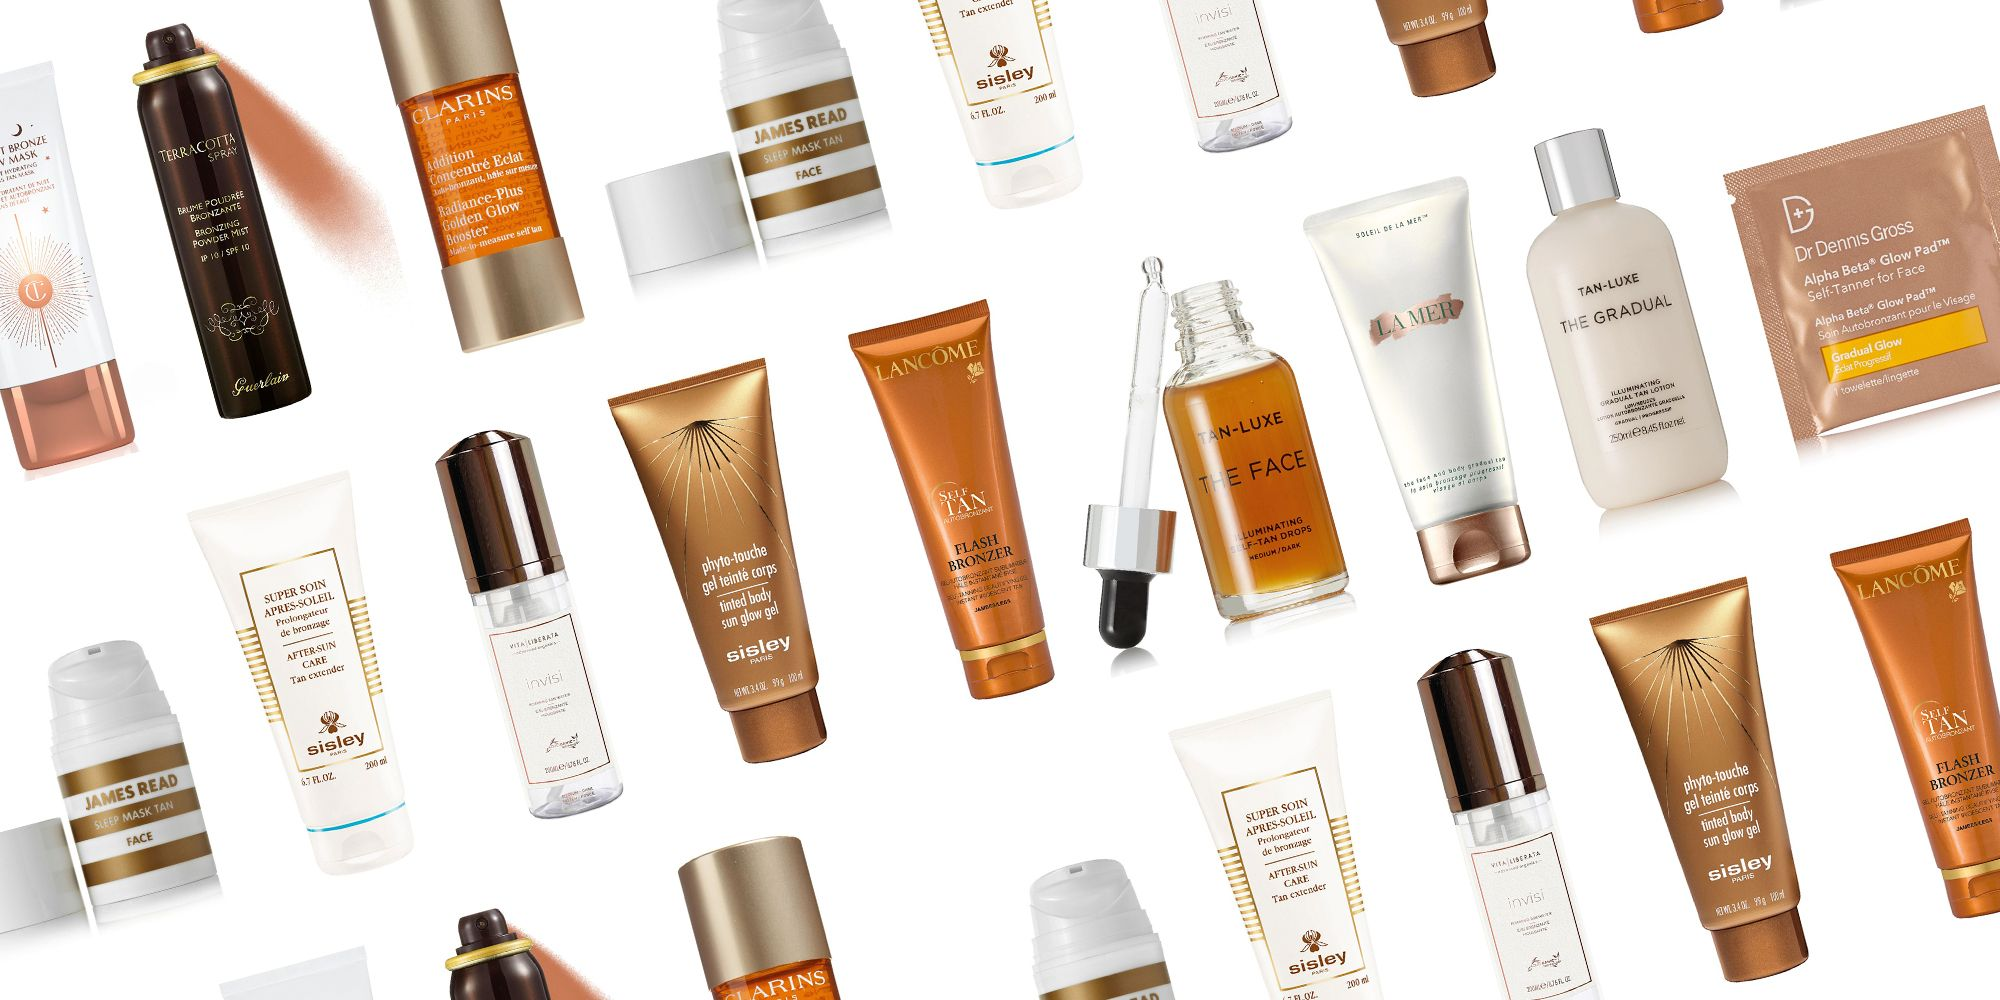 17 Best Self Tanners 2019 - Top Natural-Looking Sunless Tanning Lotions